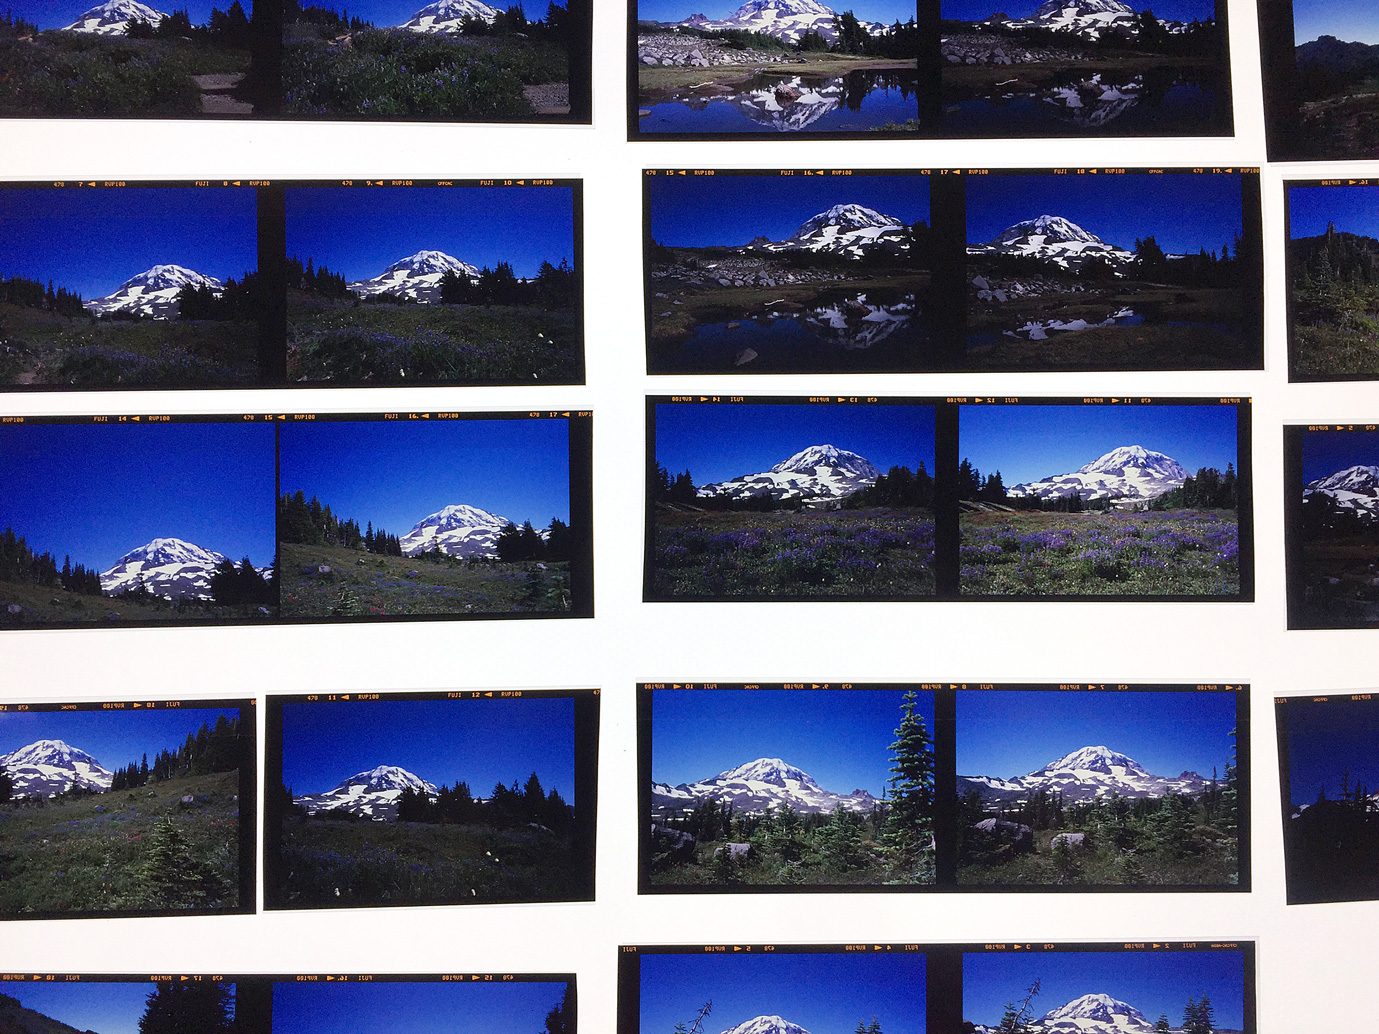 """I had a group of 14 duo pics of Mt. Rainier from a photo shoot in 2017 that I started working with. Here you see a bunch of groupings of """"nearly"""" identical duos of photos of the mountain, each similar, but in some small way different. There's a very cool series of mountain worship pieces coming out of the studio soon!"""